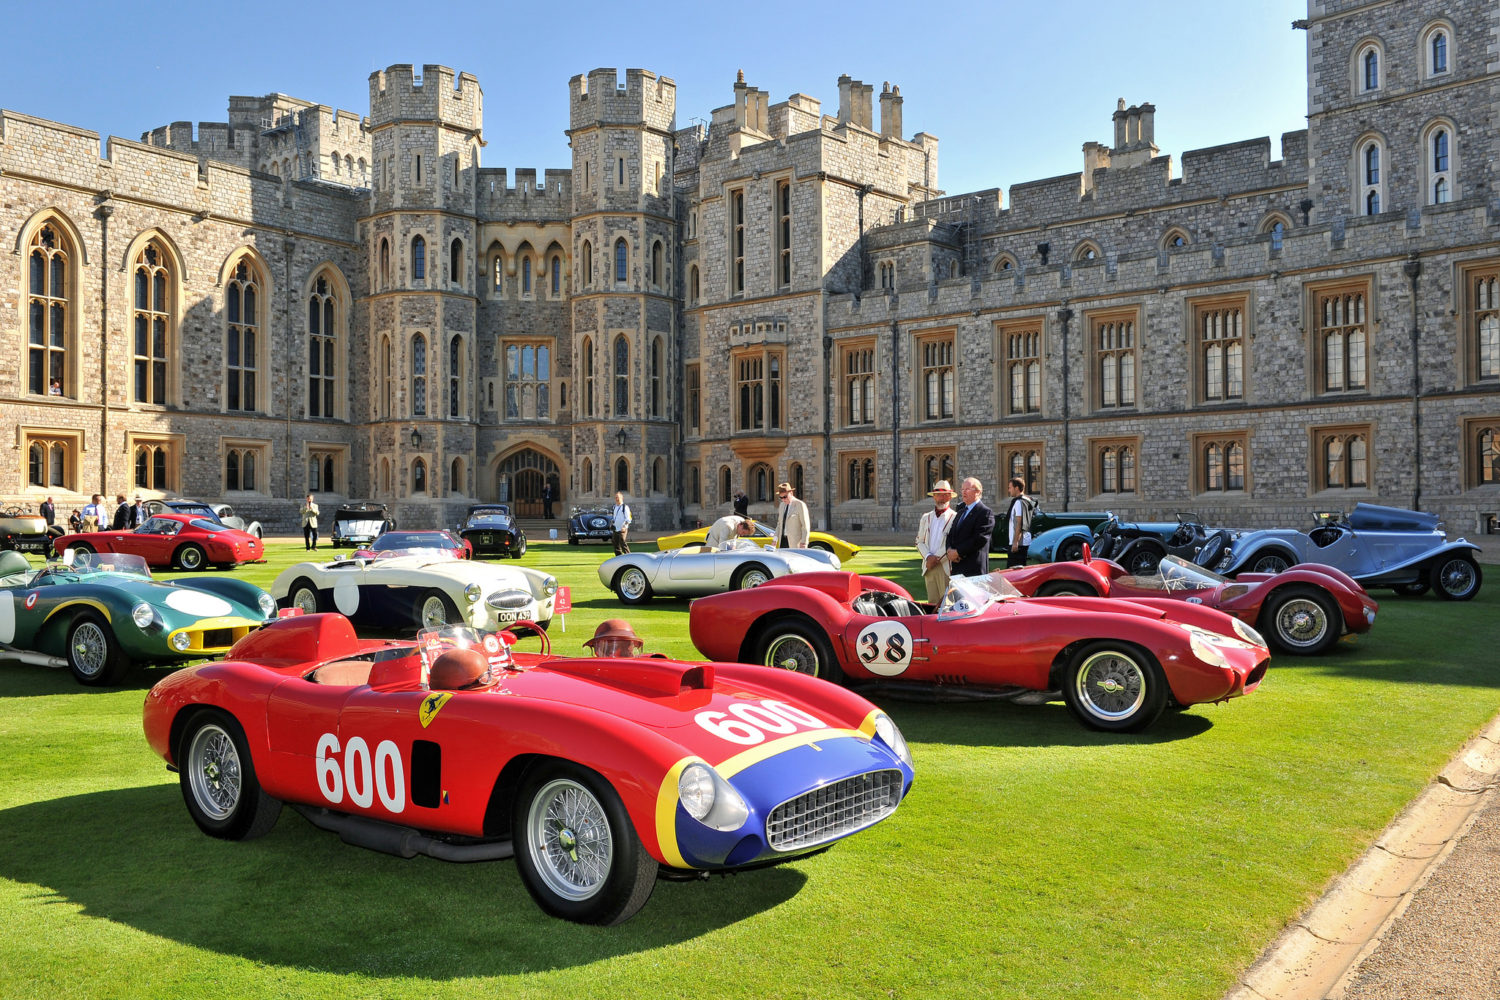 concours of elegance classic cars in front of palace